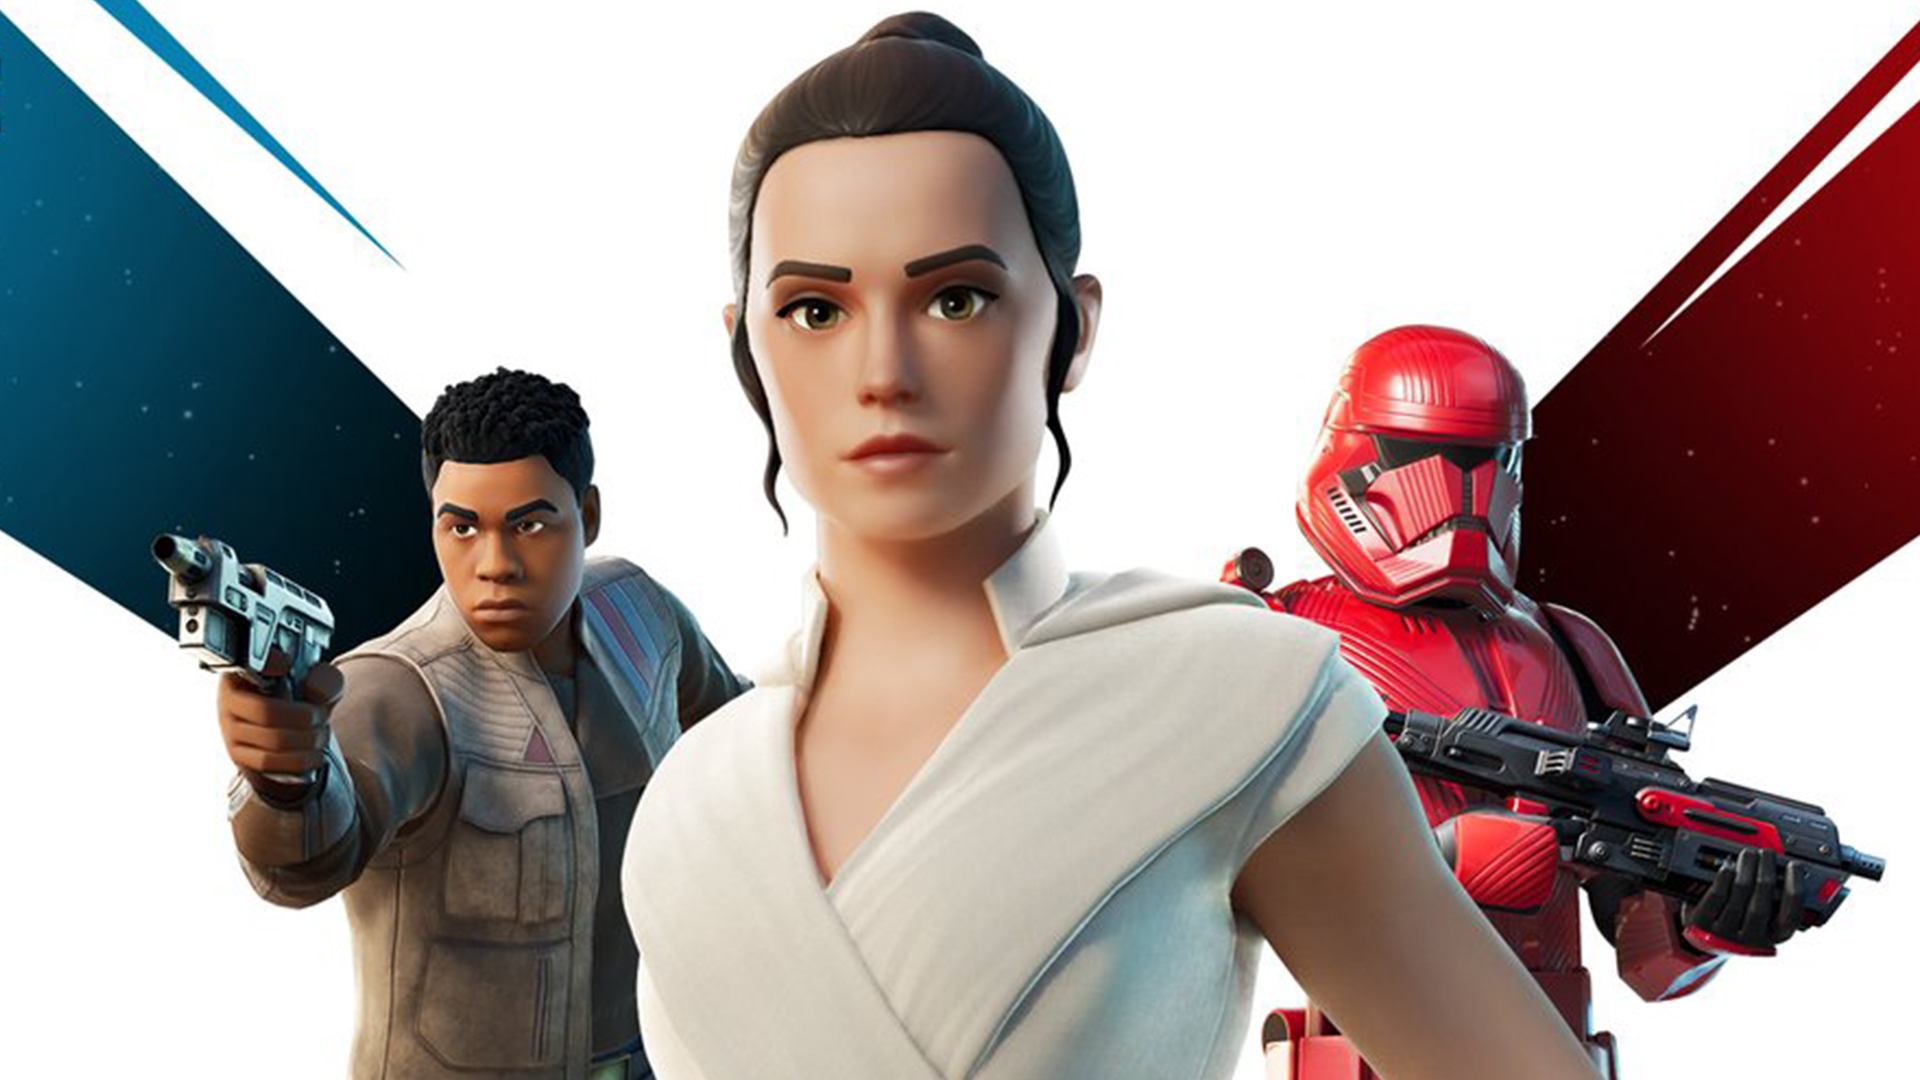 fortnite star wars event - photo #8